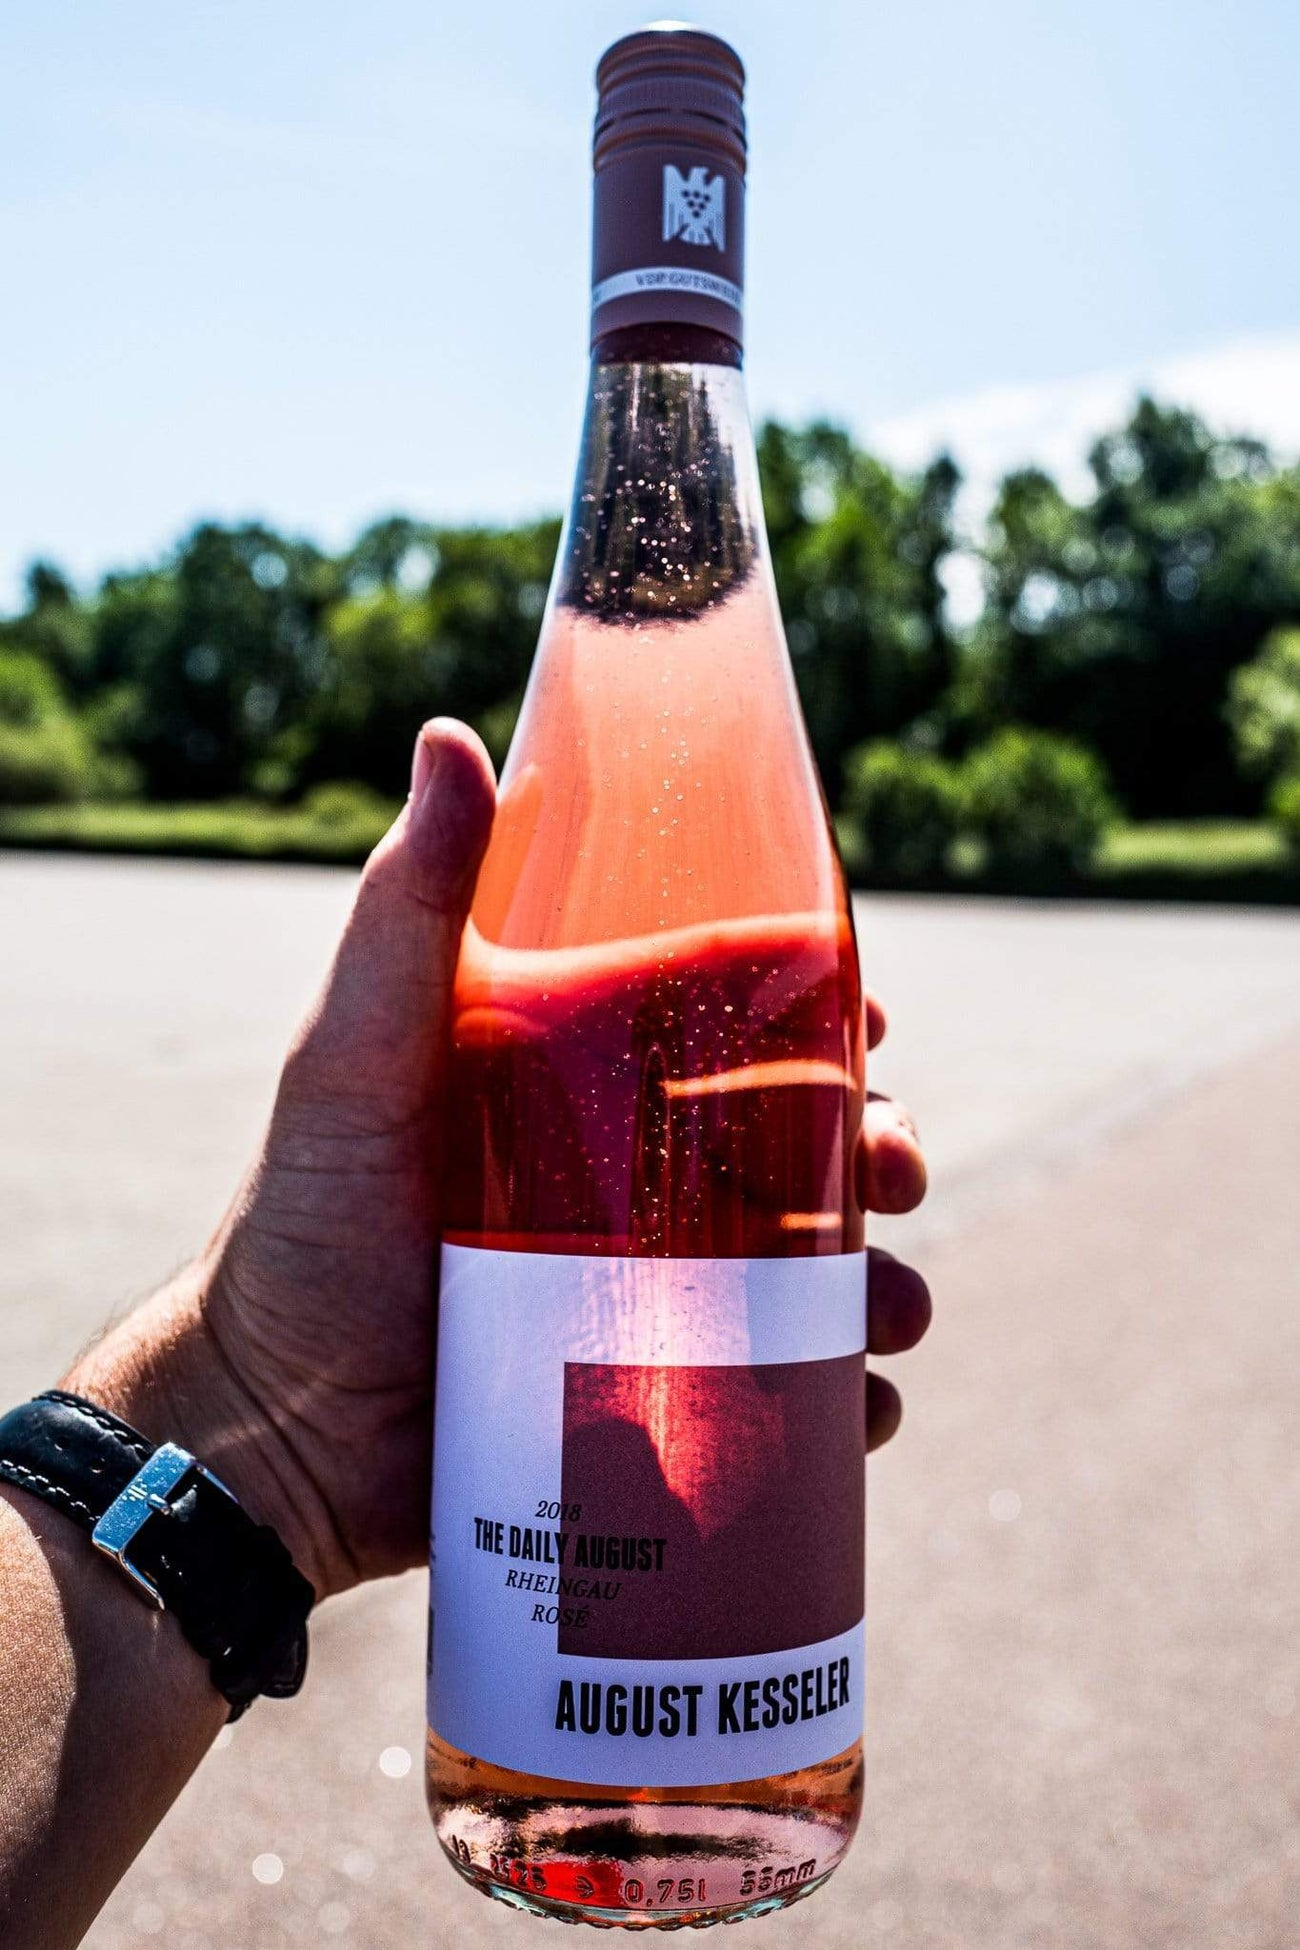 August Kesseler 2018 The Daily August Rosé Rheingau